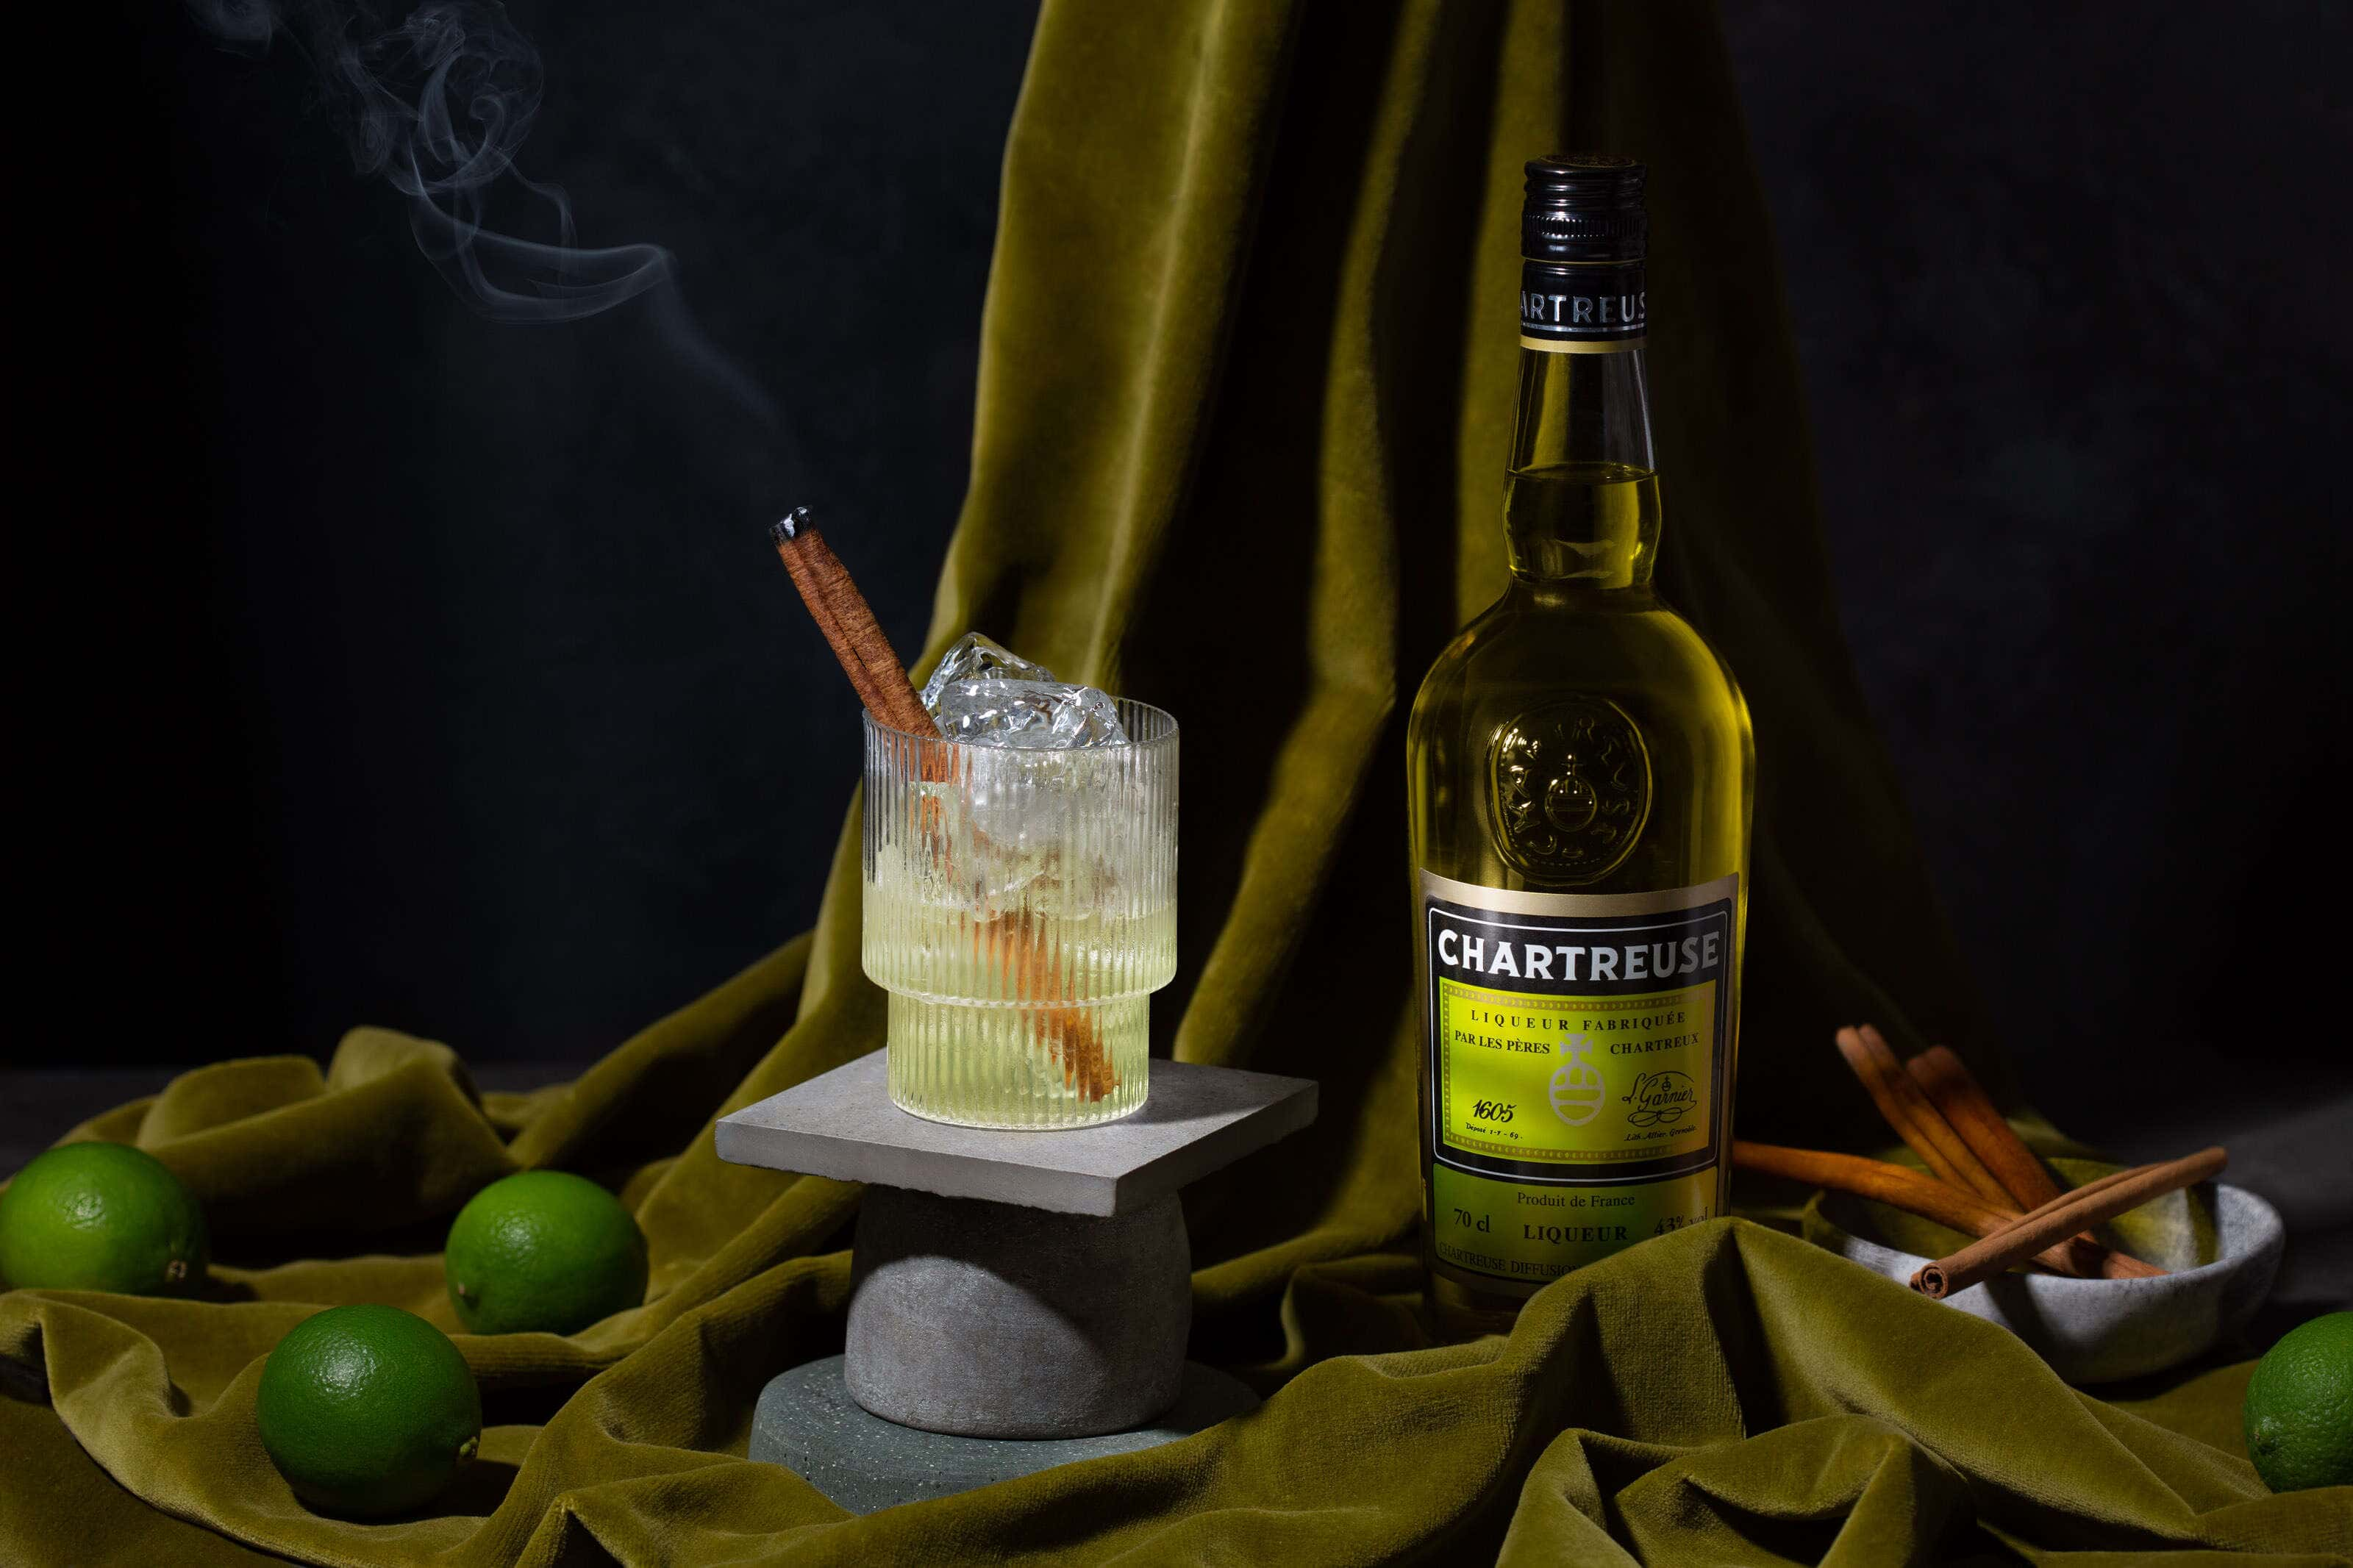 charteuse_bottle_and_cocktail with cinnamon stick smoking and limes on the table